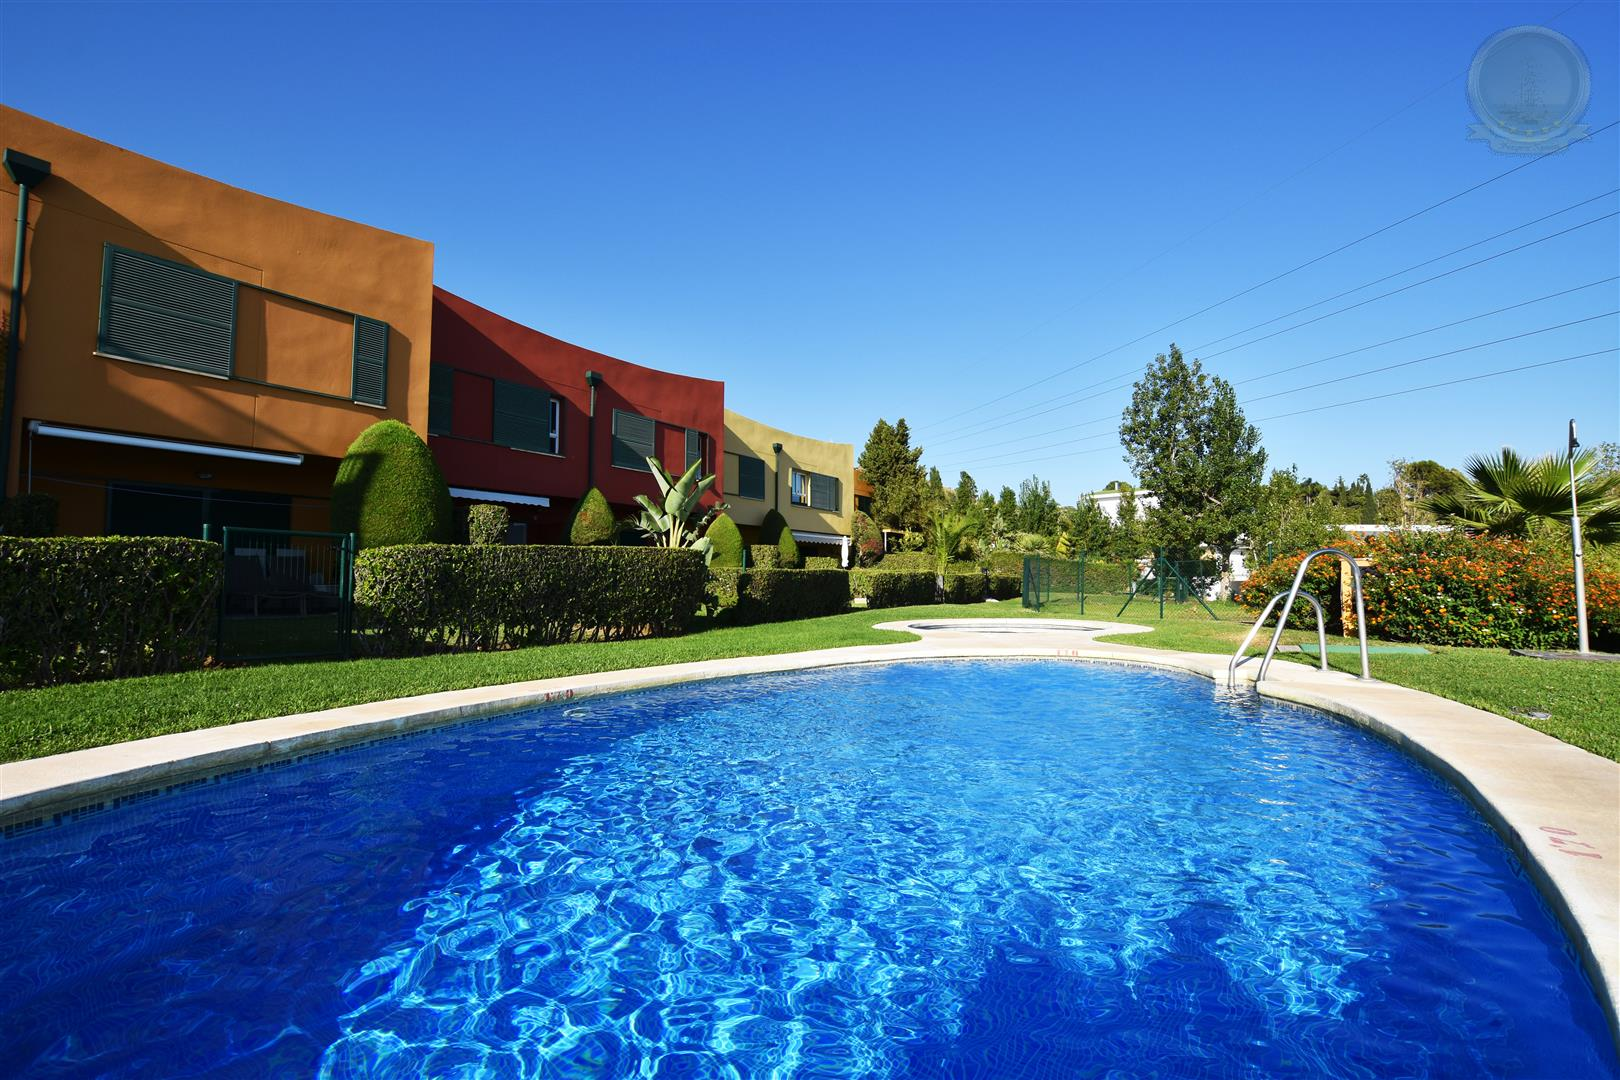 community pool of townhouse for sale in Higueron